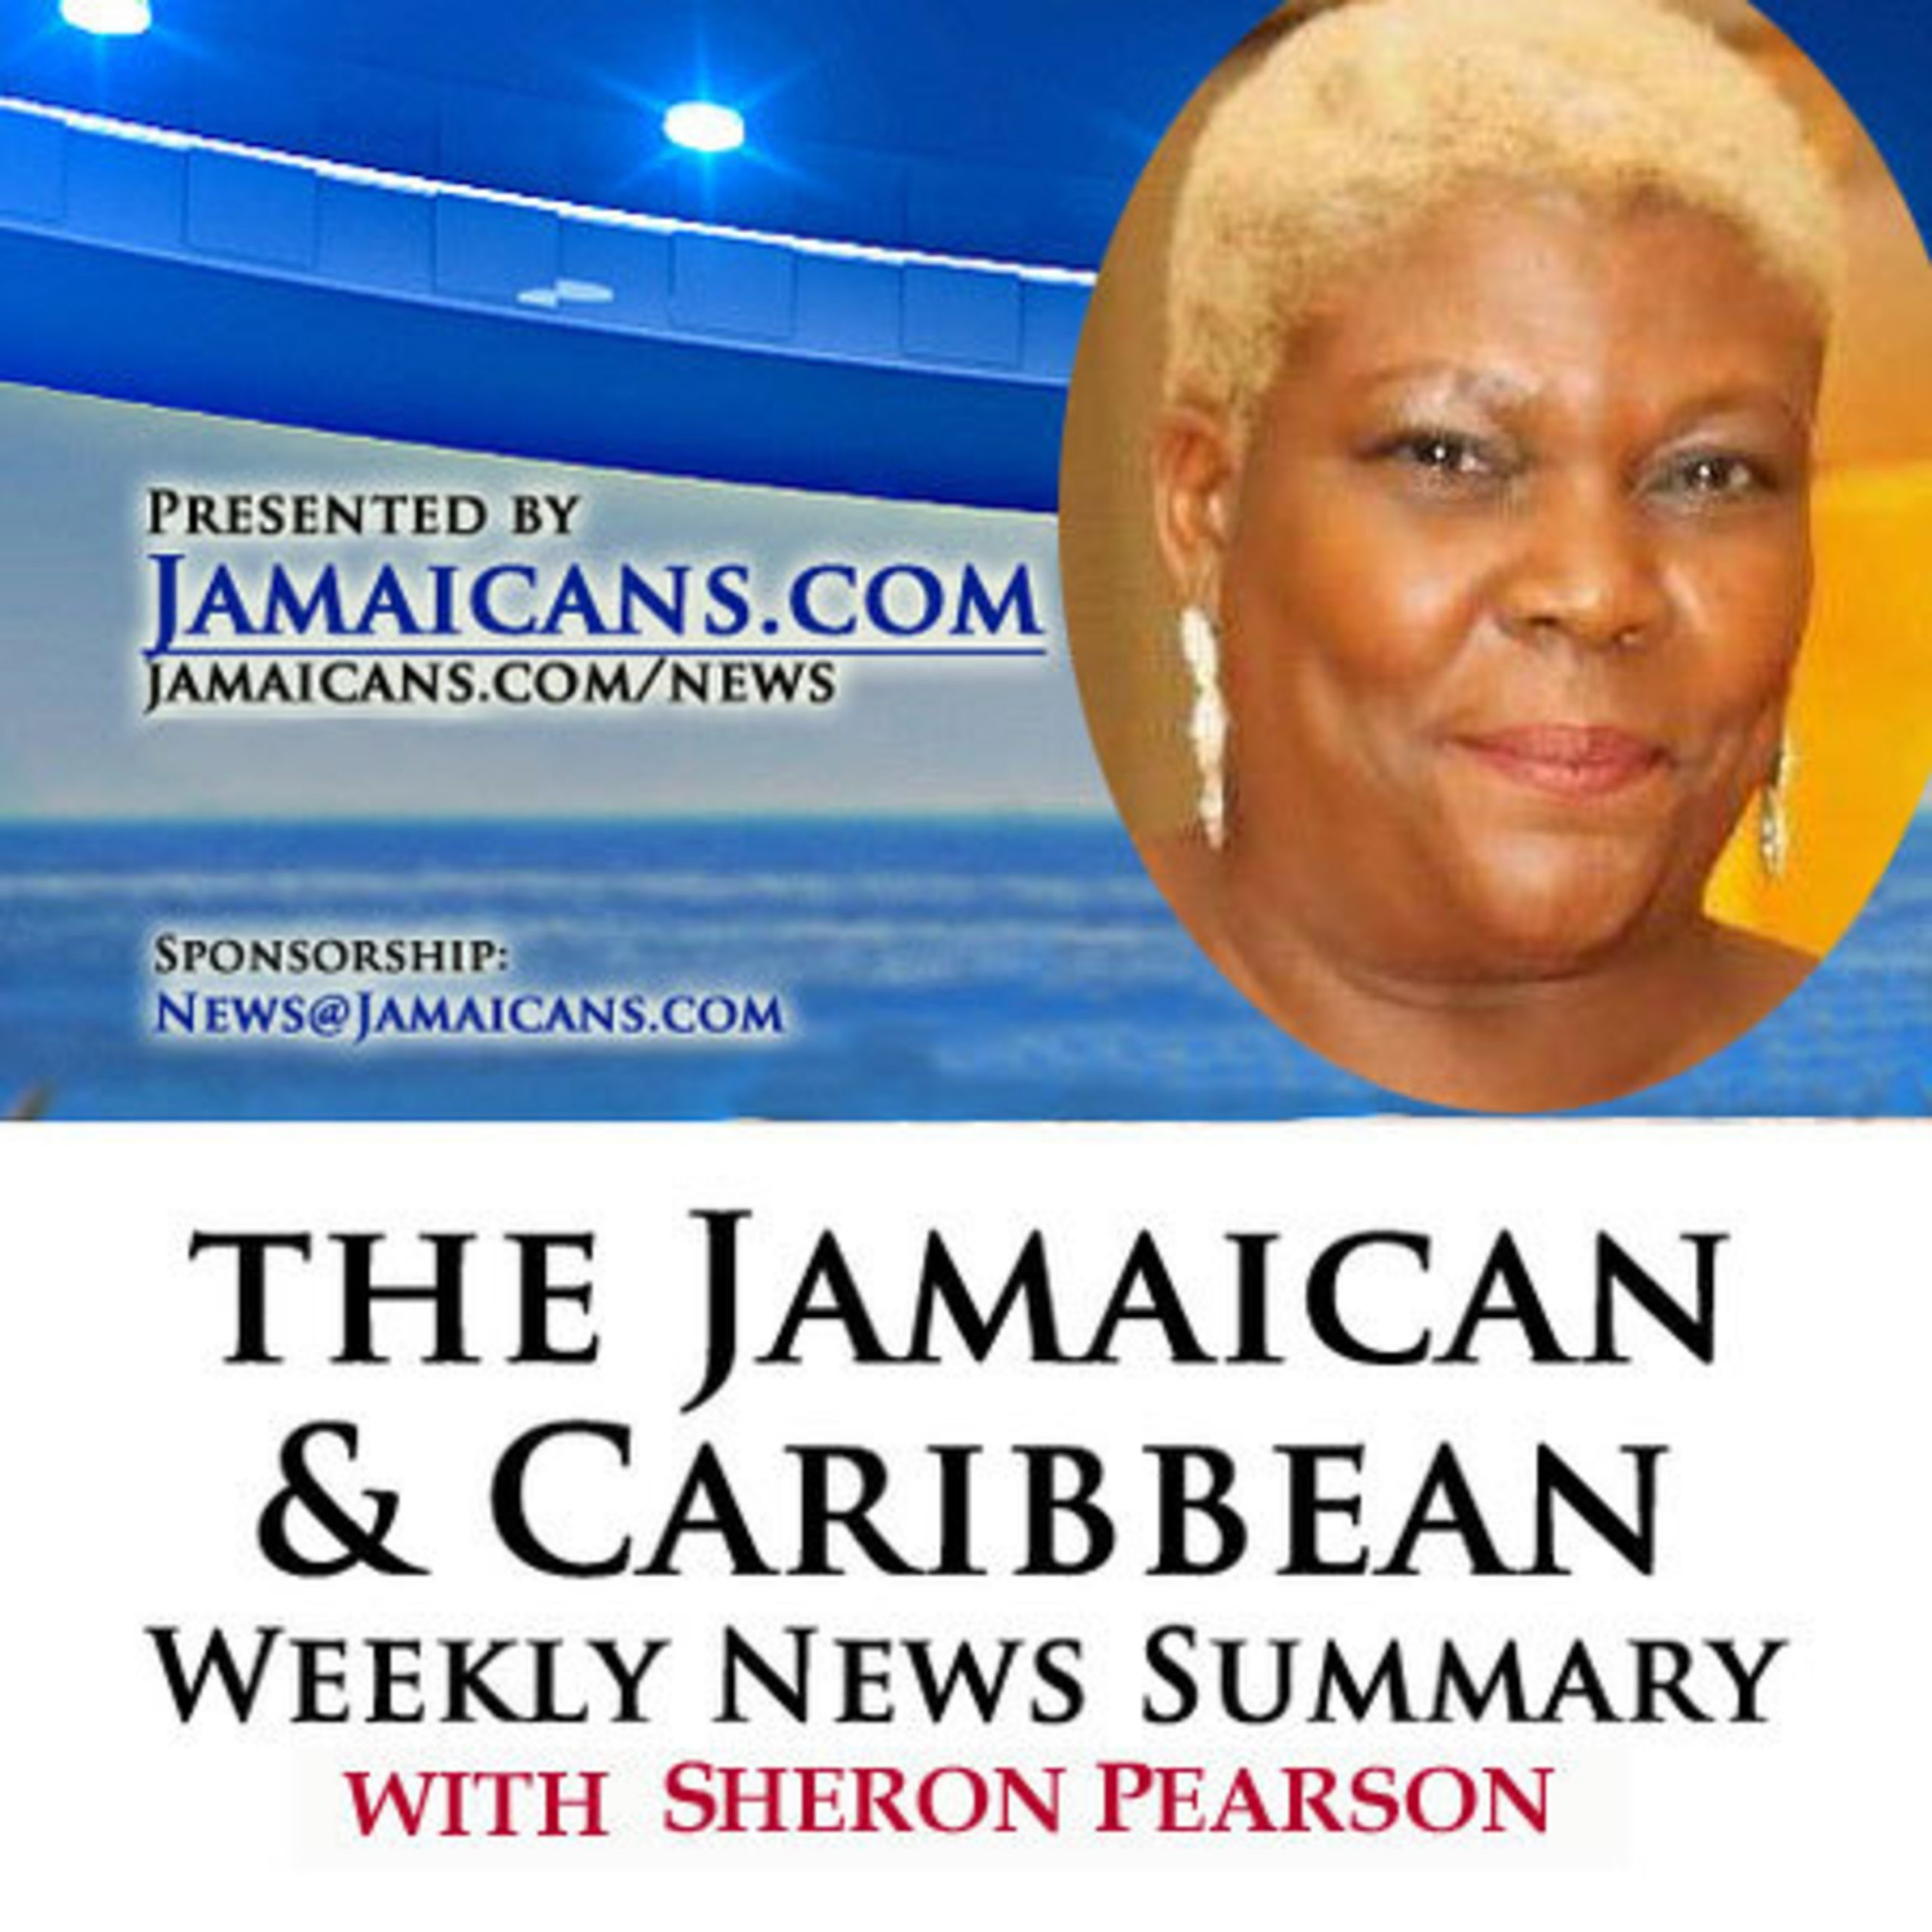 This is the Podcast of 7 Jamaican & Caribbean News Stories You May Have missed for the week ending  April 26, 2019.